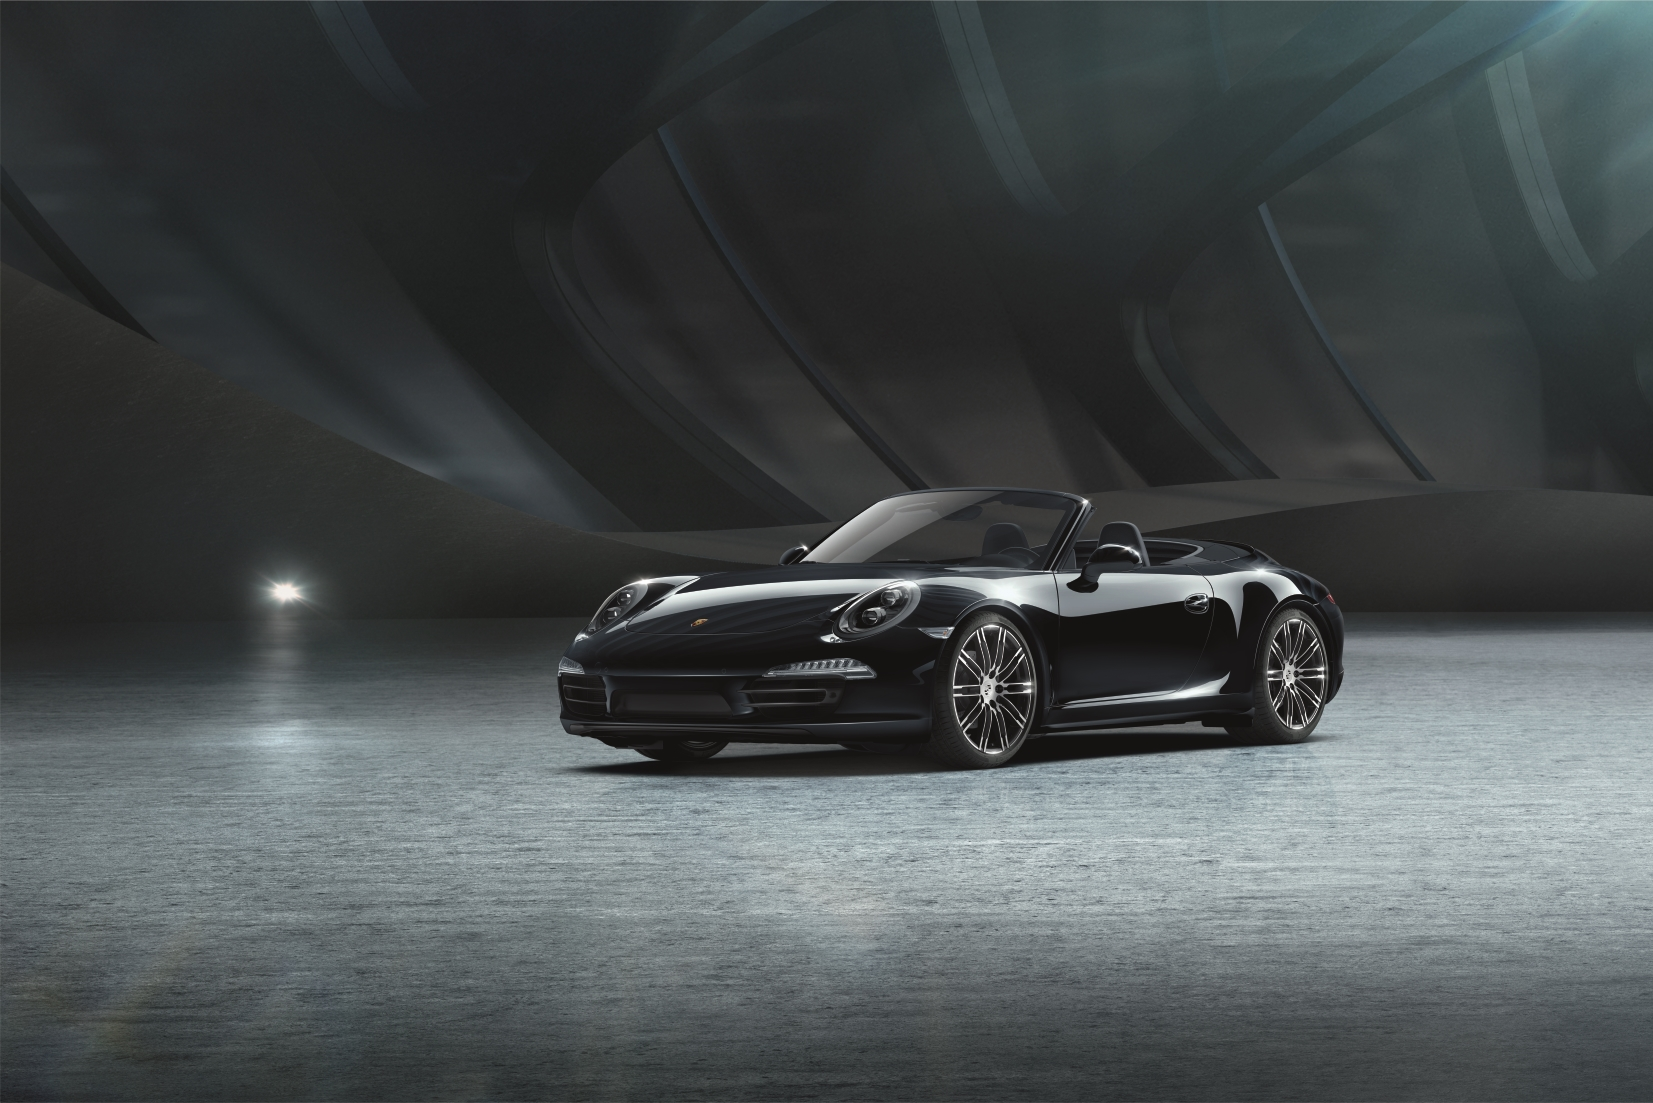 The new 911 Carrera 4 Cabriolet Black Edition